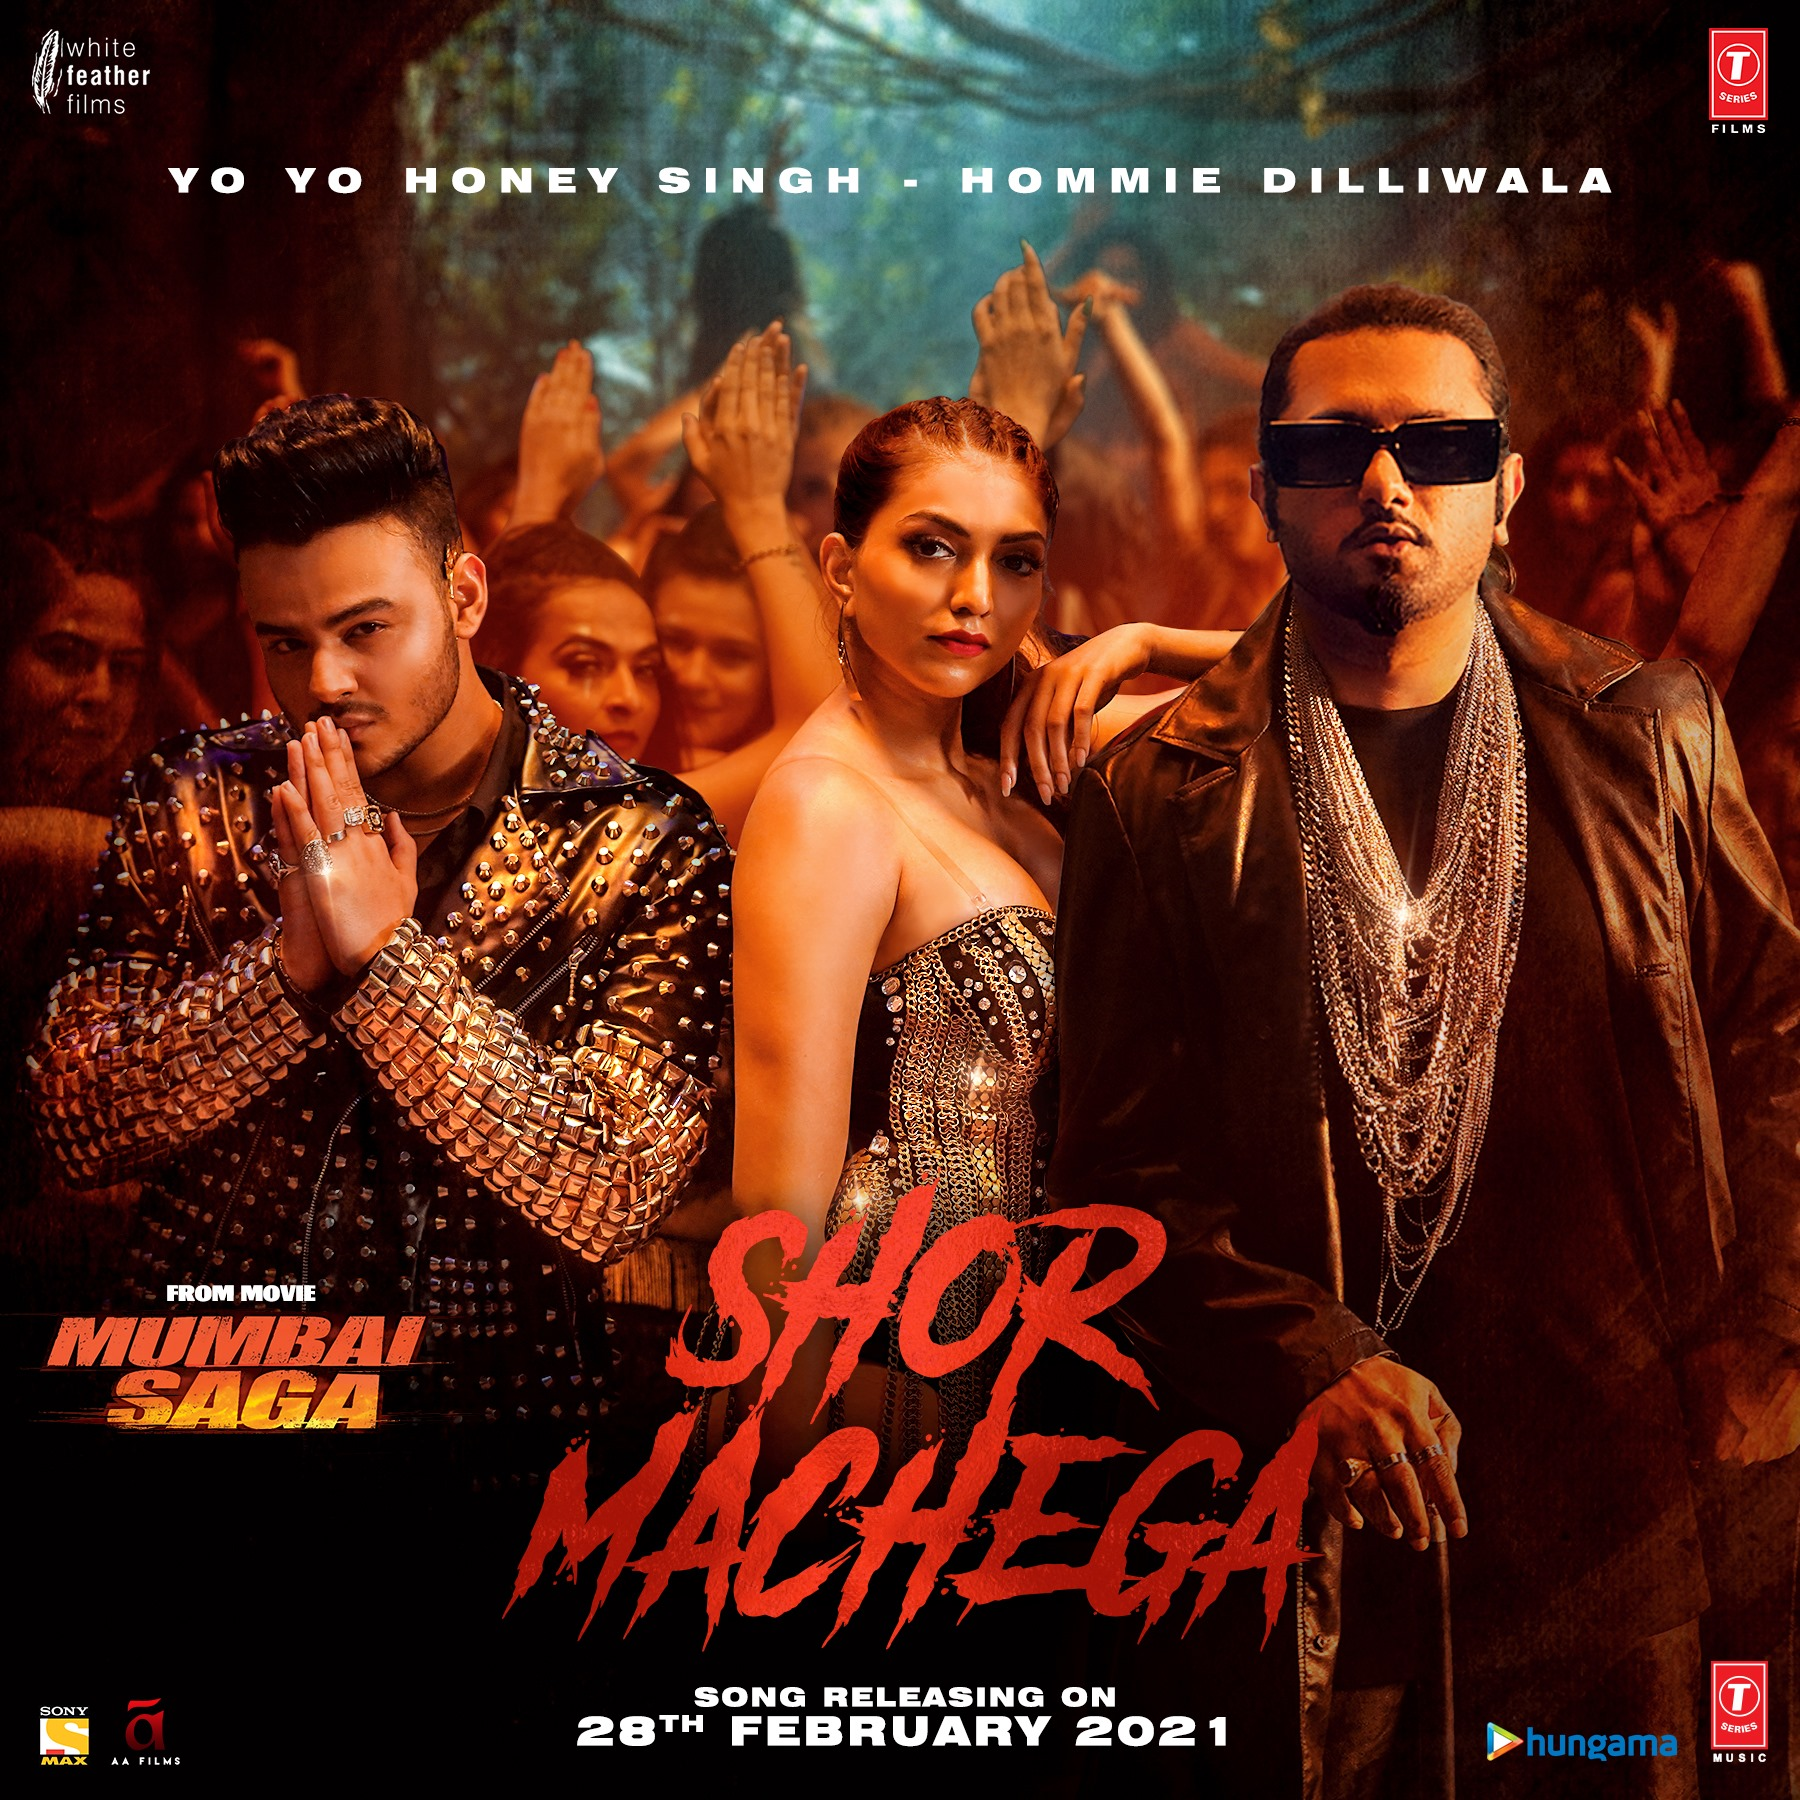 Shor Machega – Mumbai Saga (2021) Ft. Yo Yo Honey Singh & Emraan Hashmi HD